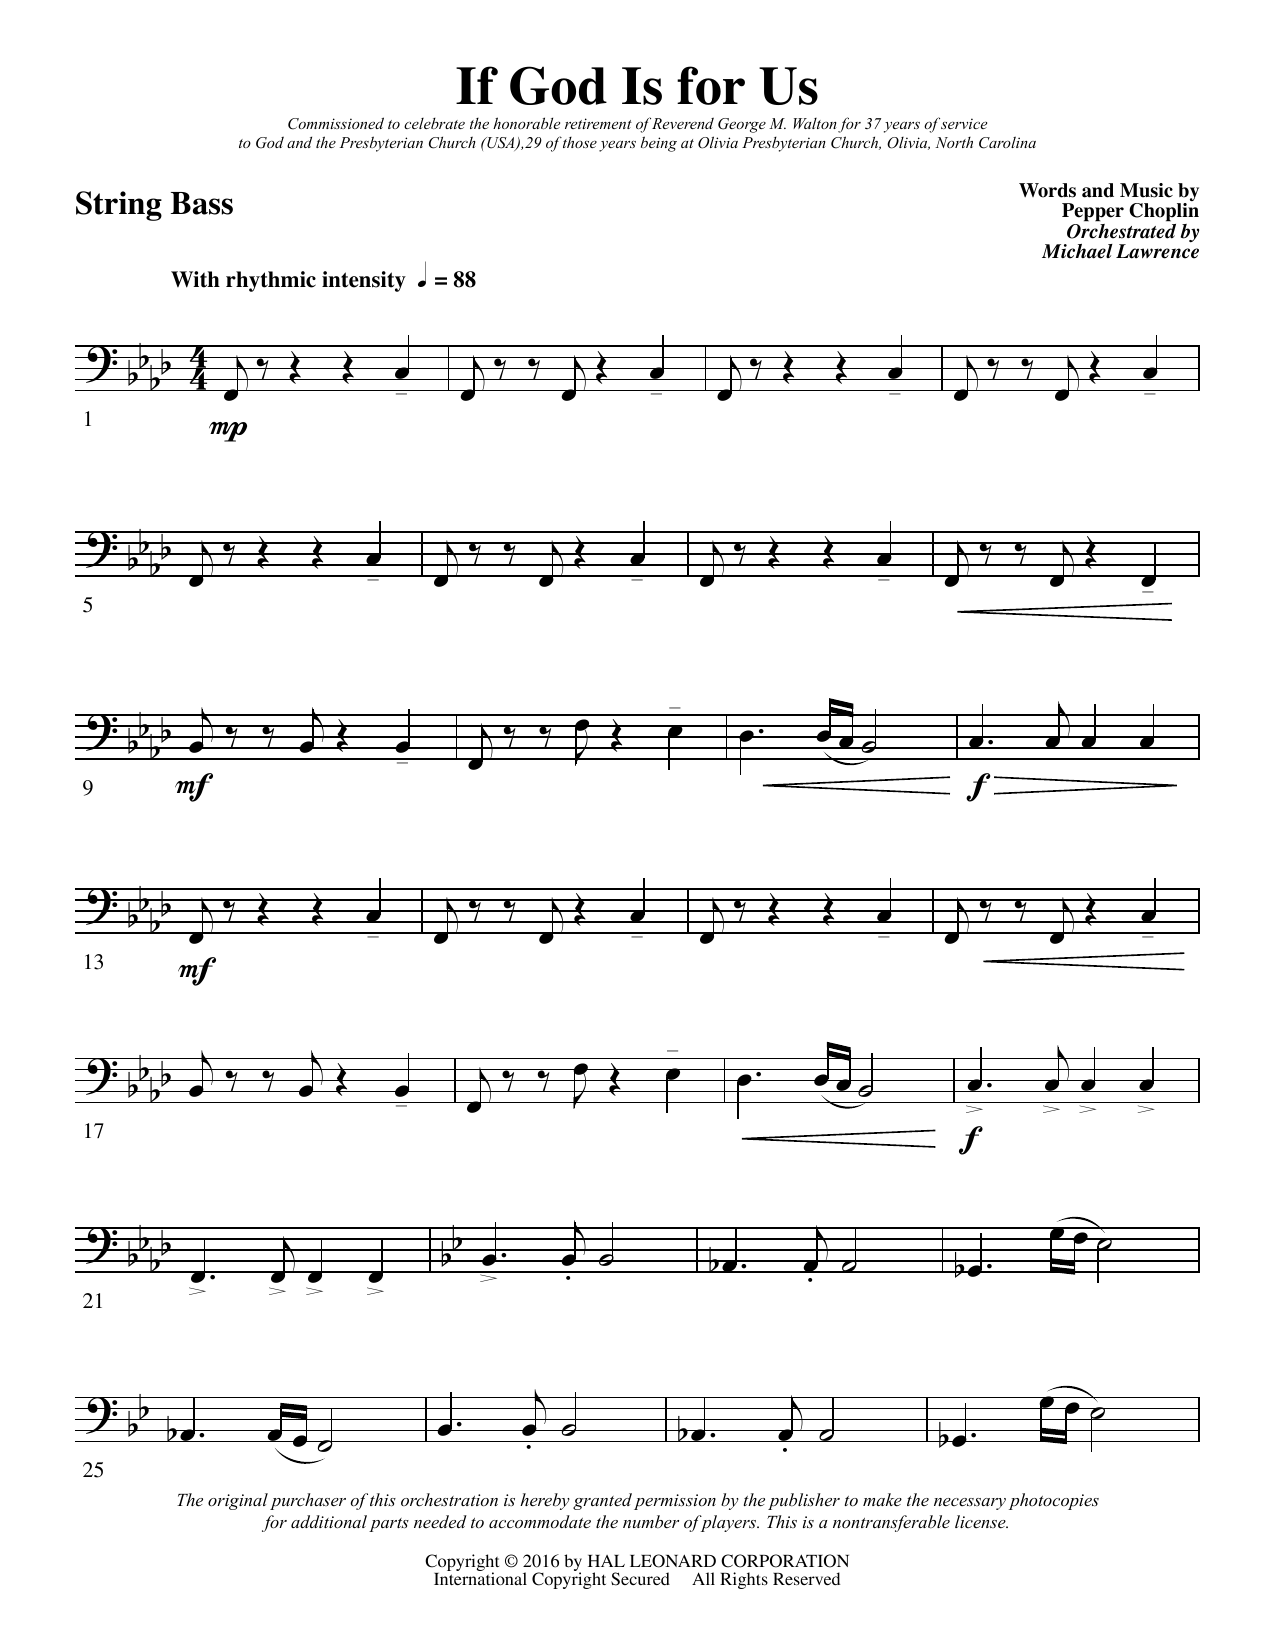 If God Is for Us - String Bass Sheet Music